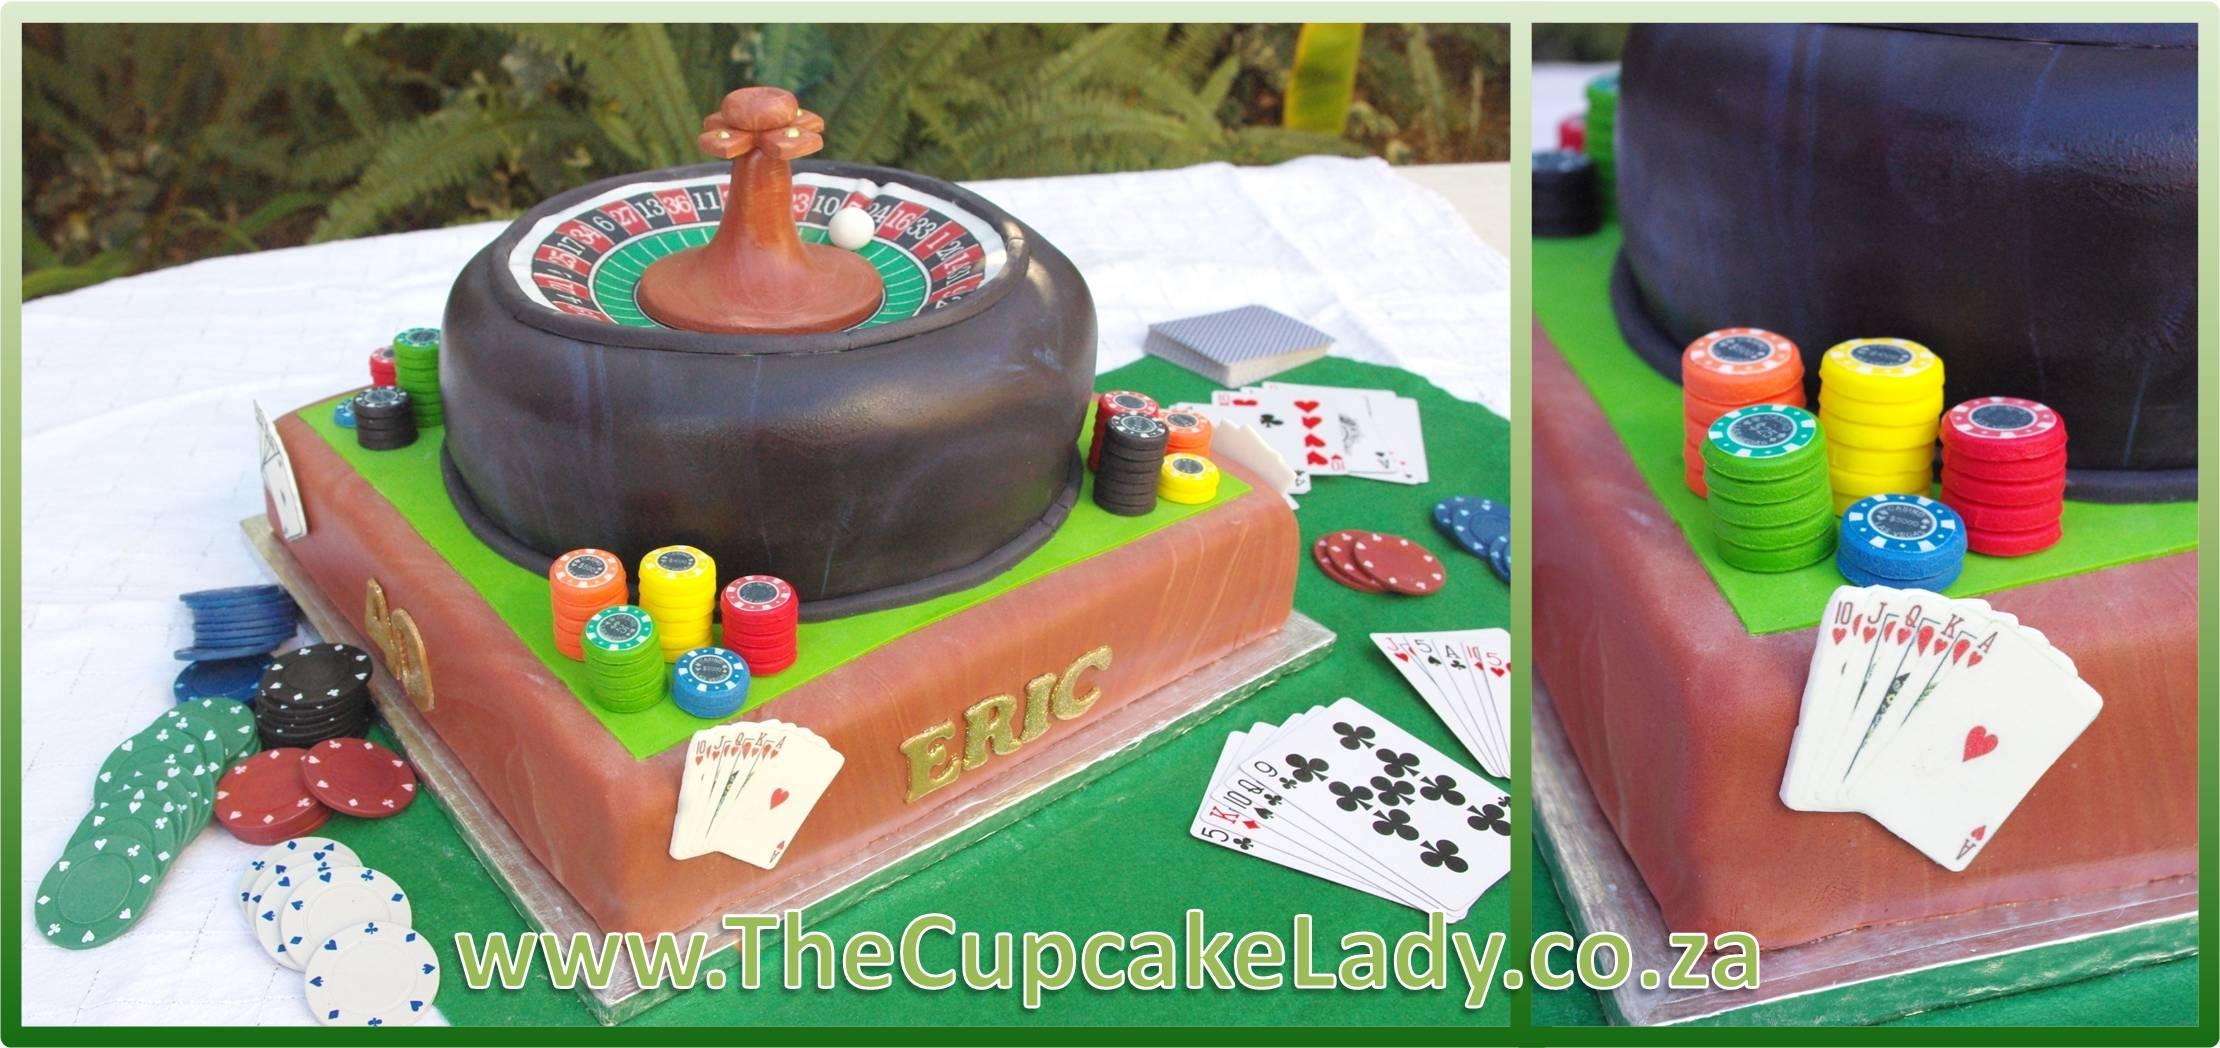 red velvet cake, cream cheese icing, roulette wheel, poker table, playing cards, poker chips